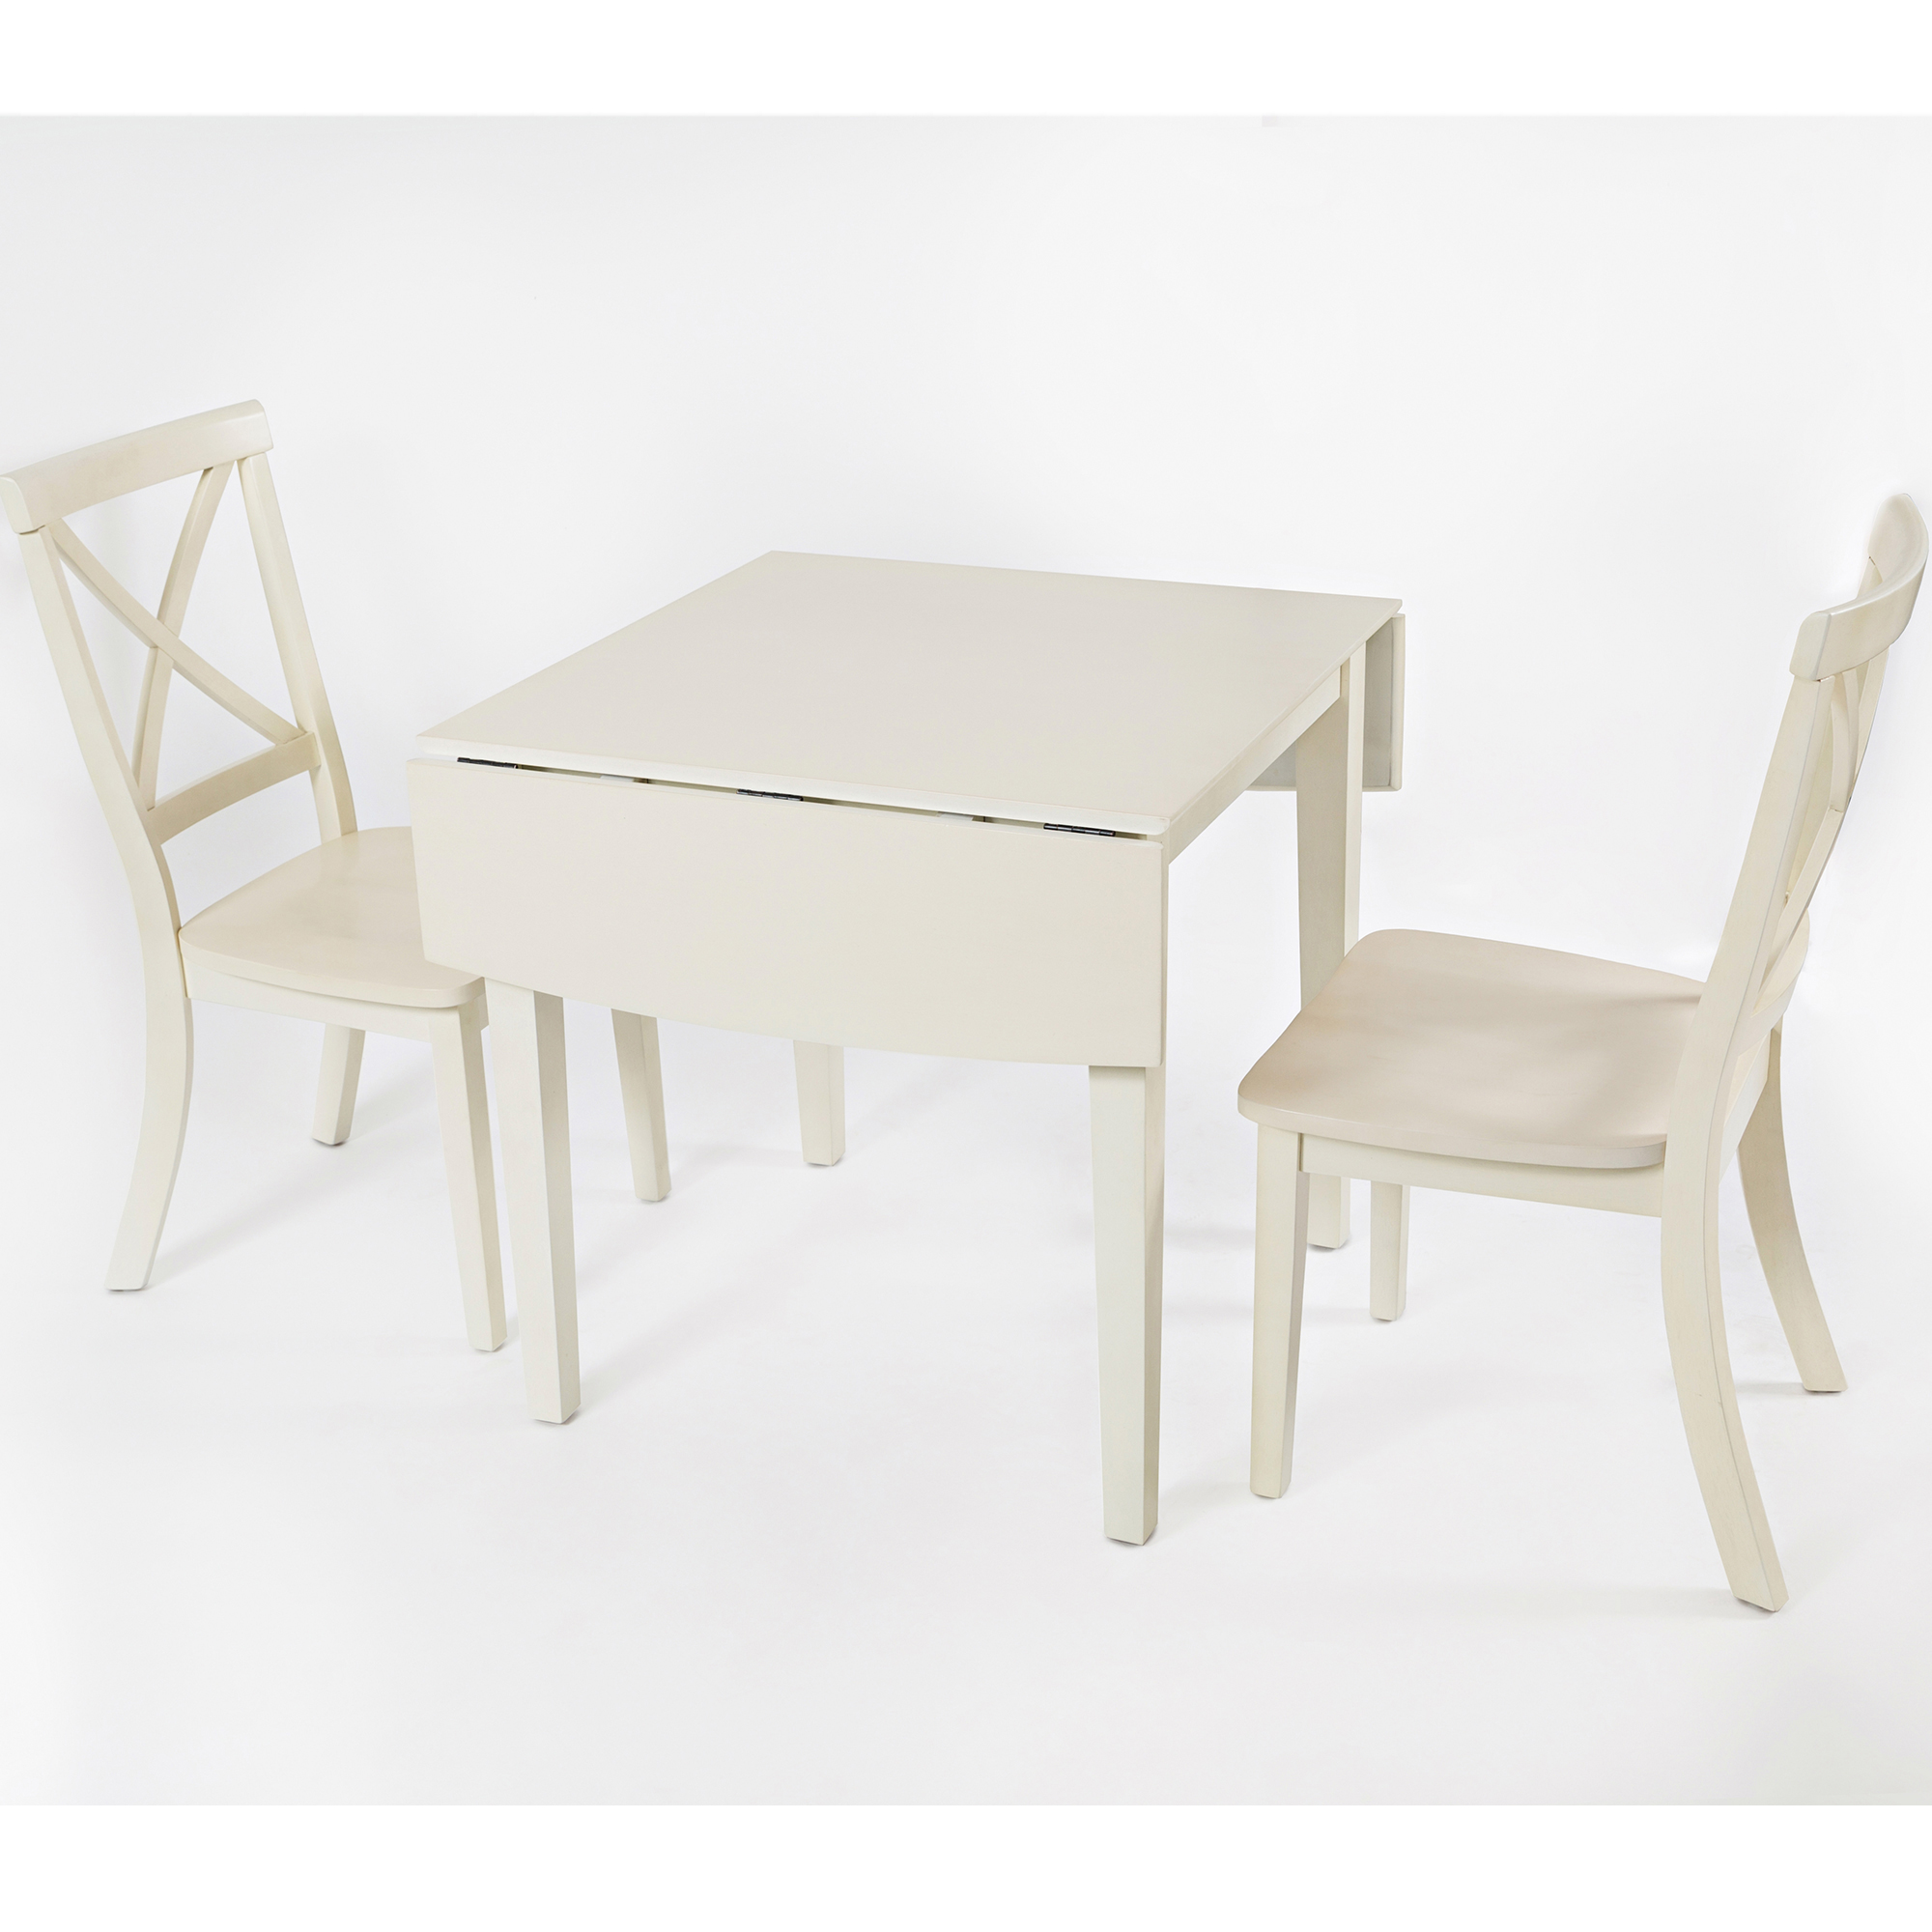 Everyday Clics Double Drop Leaf Dining Table W 2 X Back Chairs In Linen By Jofran